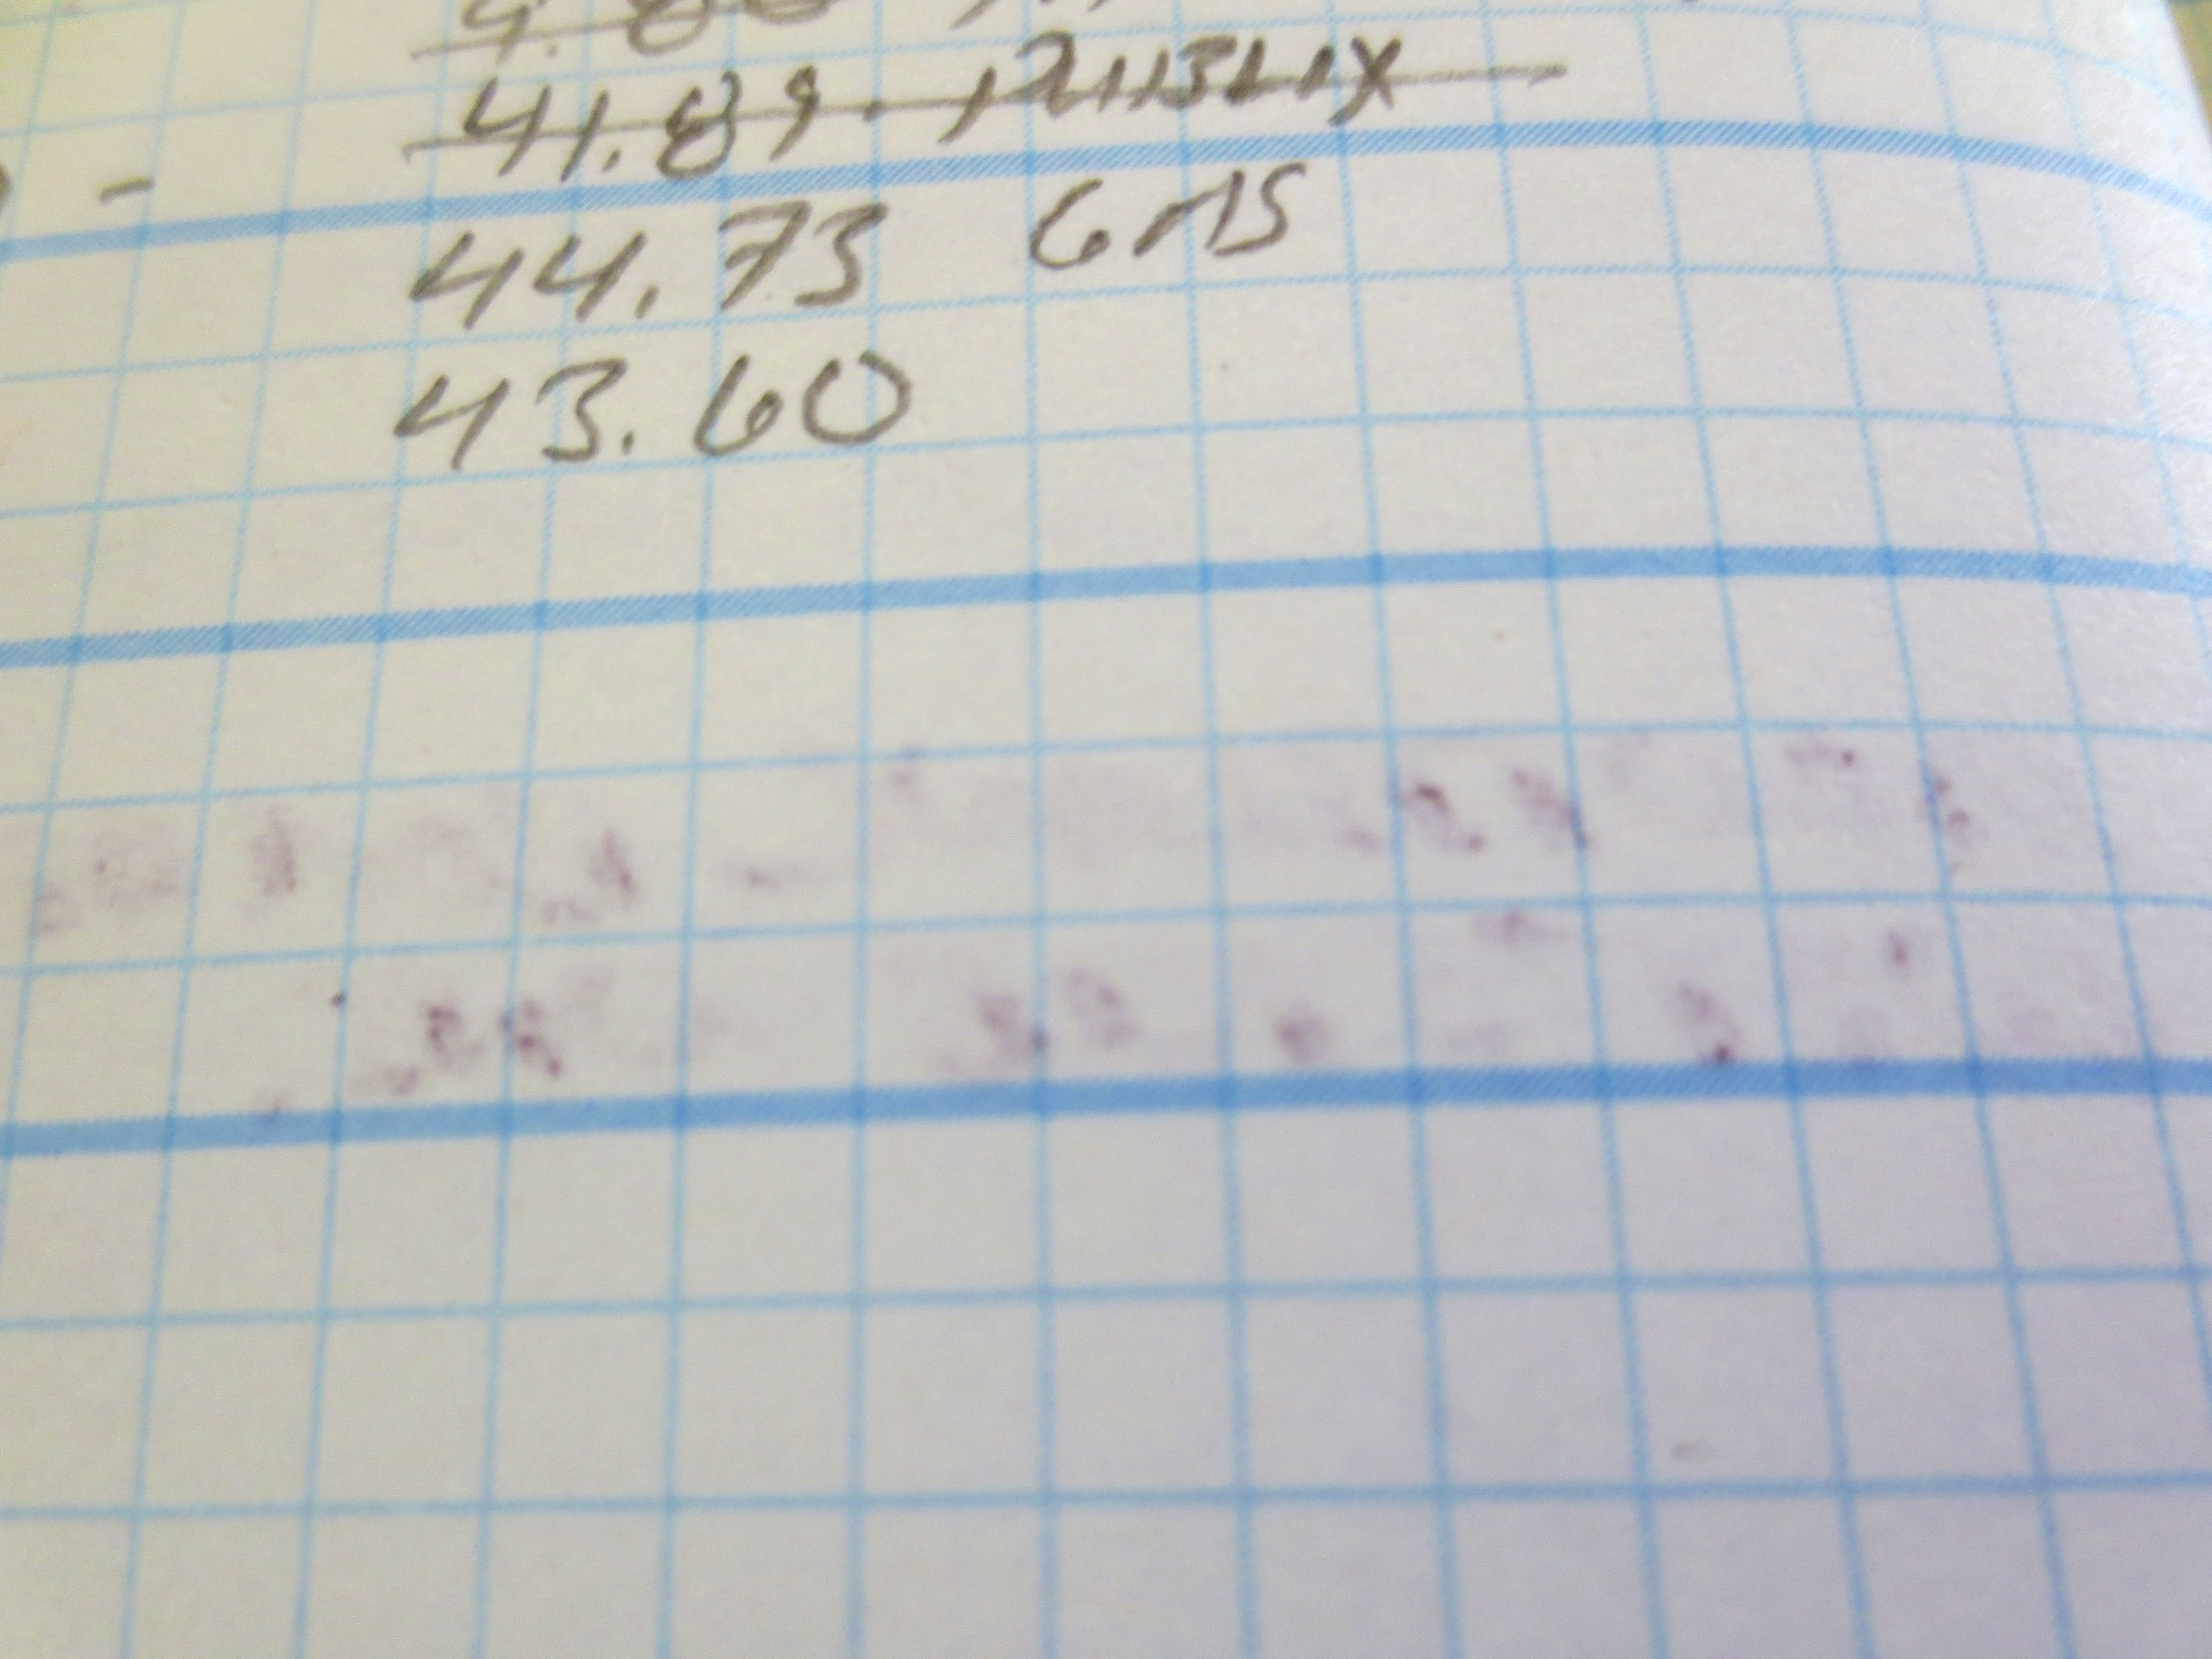 Some slight bleed-through with a very wet nib, but standard Field Notes paper would be much worse.